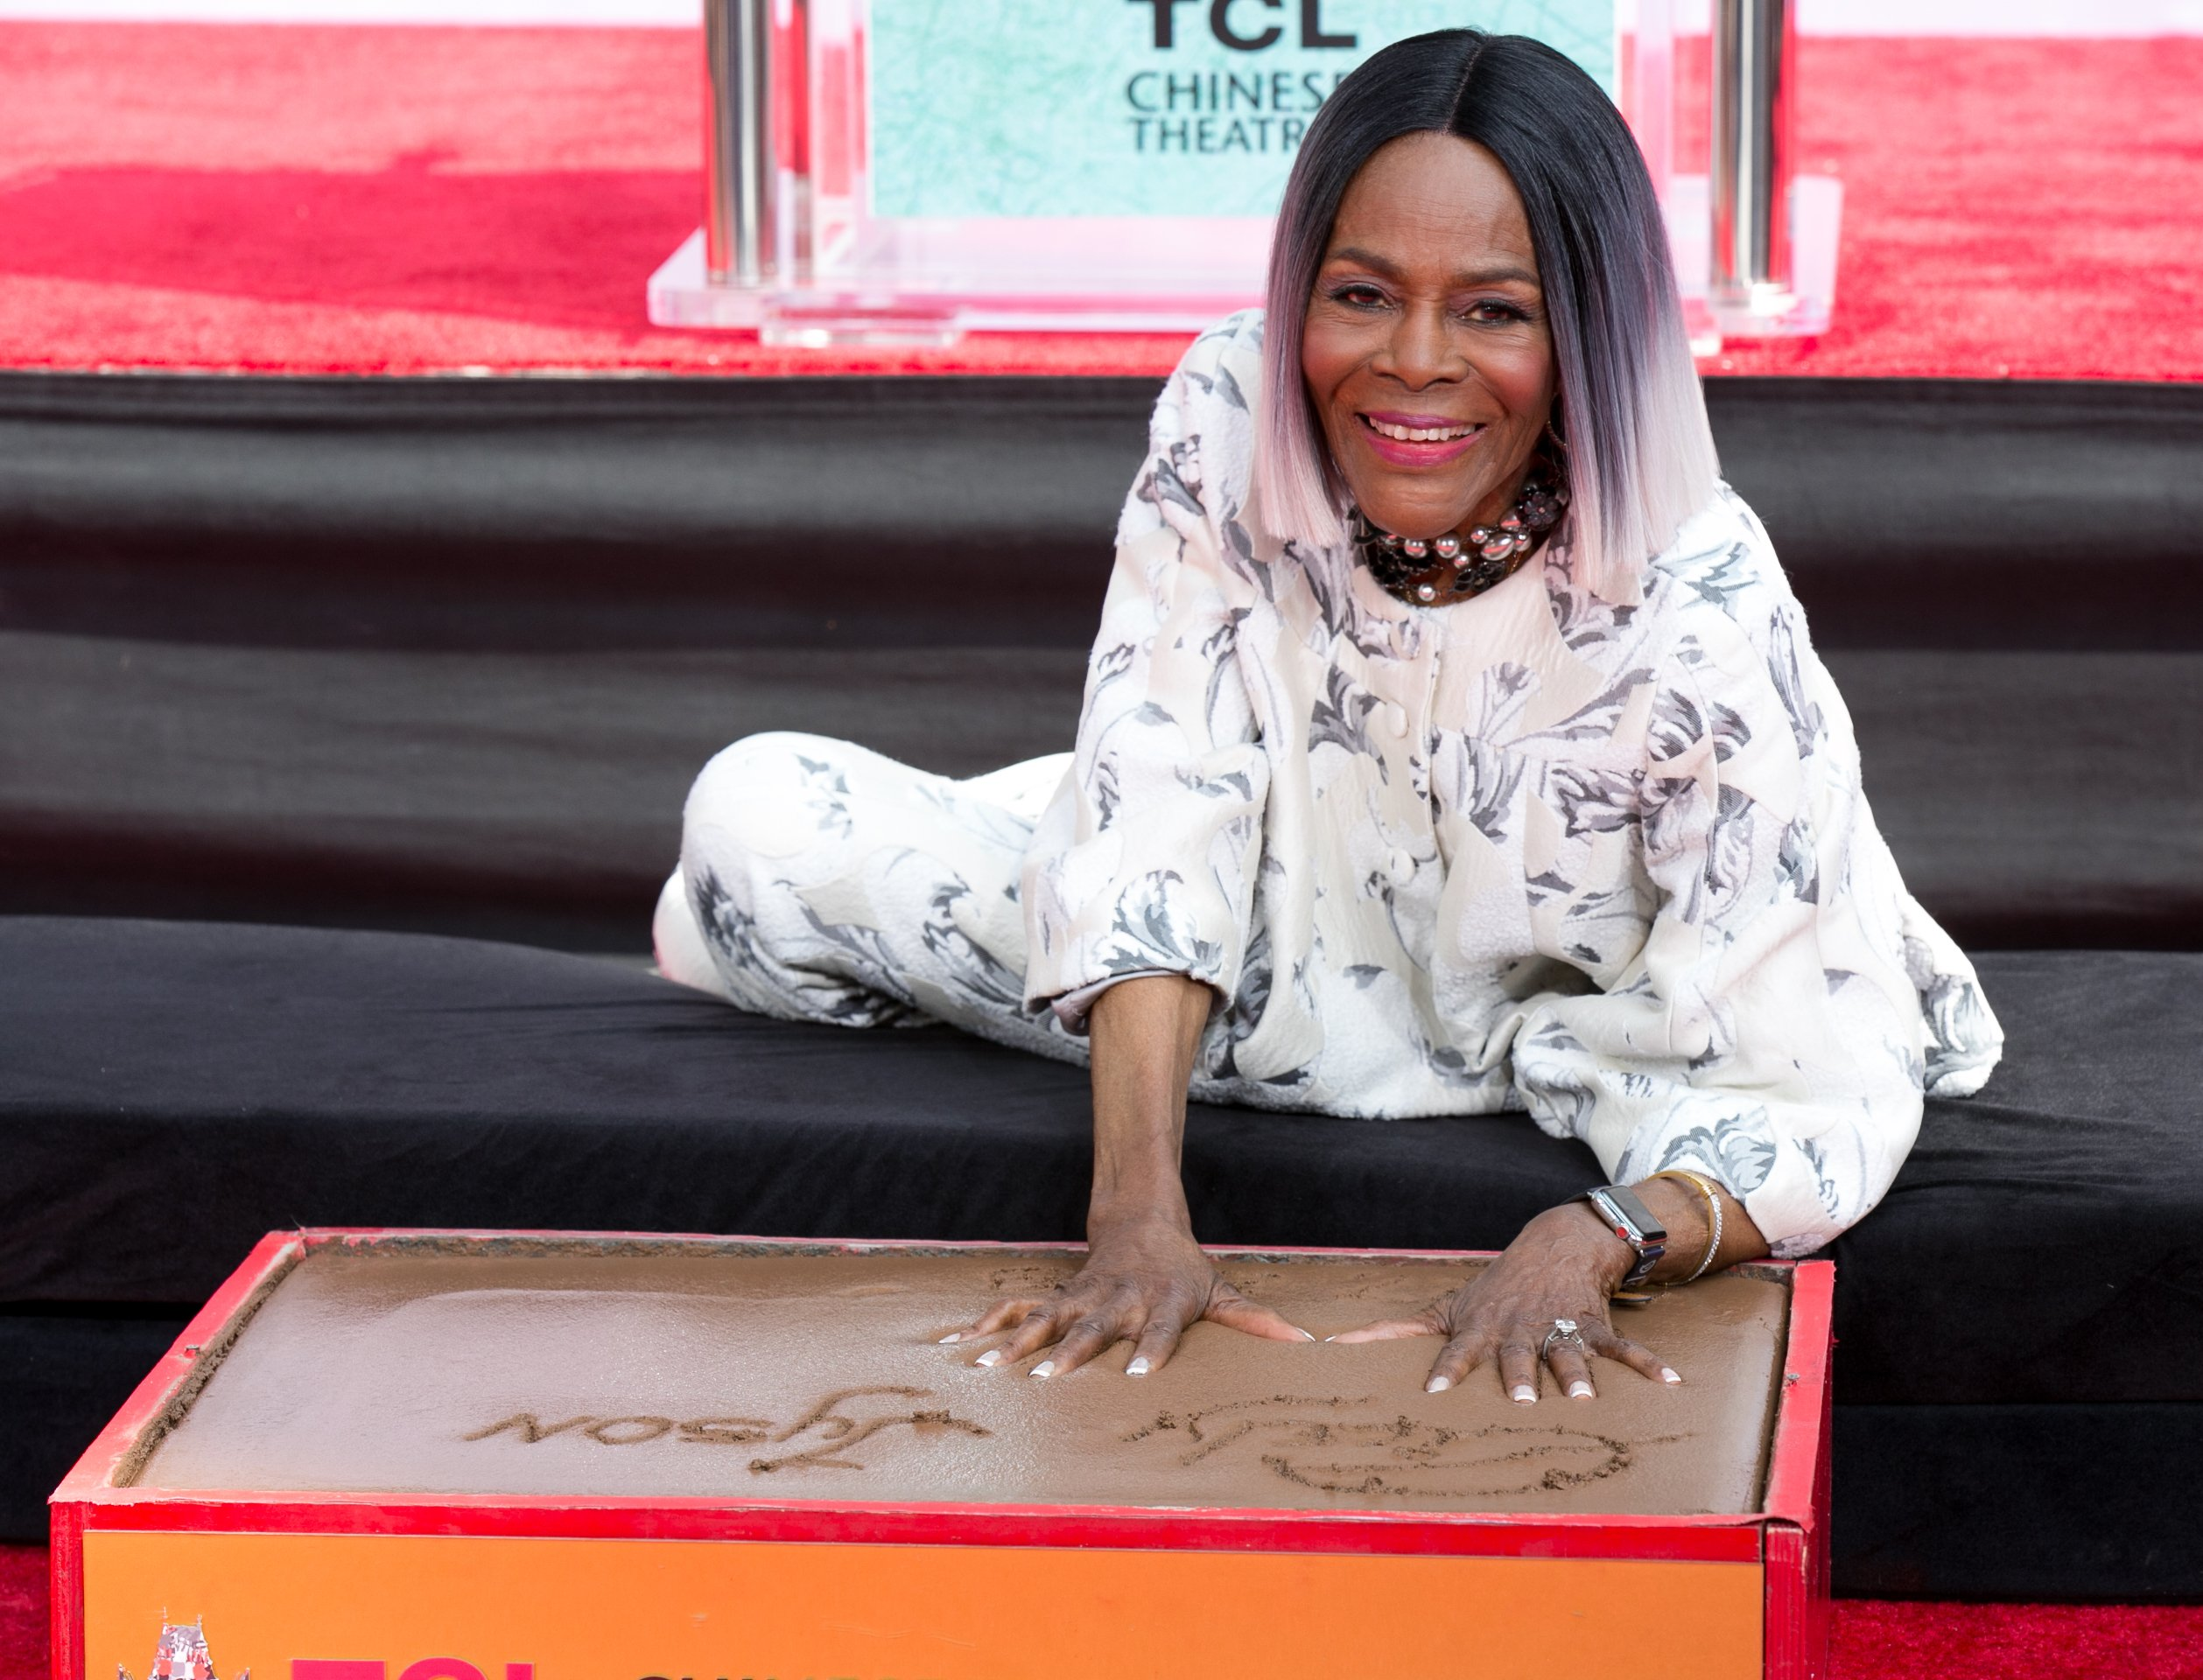 Cicely Tyson poses as TCM honors her with hand and footprint ceremony at TCL Chinese Theatre IMAX on April 27, 2018 in Hollywood, California.| Source: Getty Images